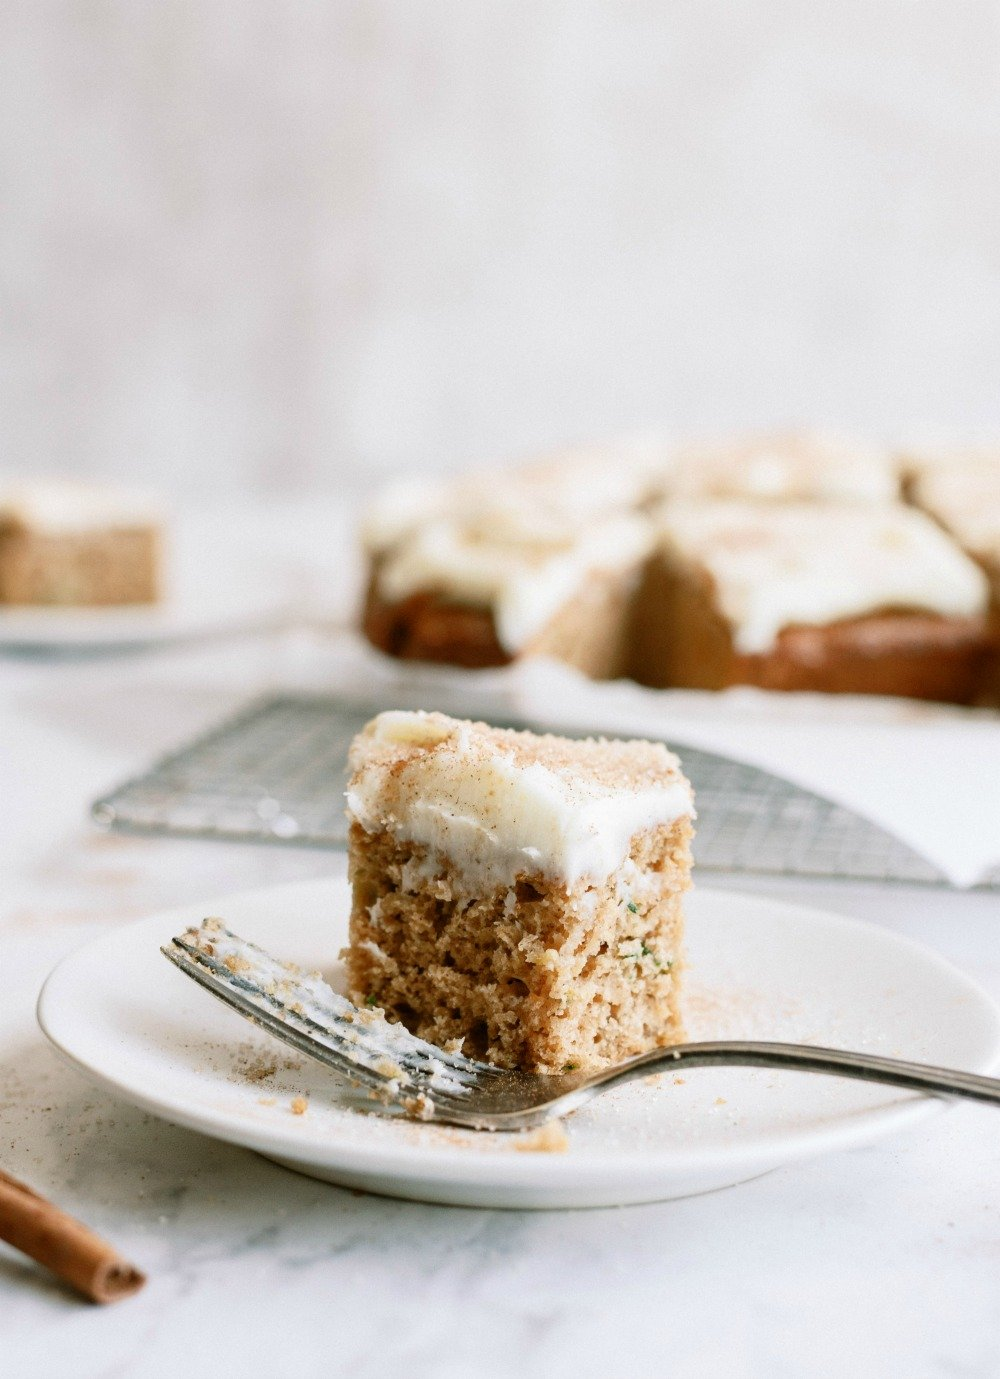 Slice of Cinnamon Zucchini Cake with Cream Cheese Frosting on a plate with fork